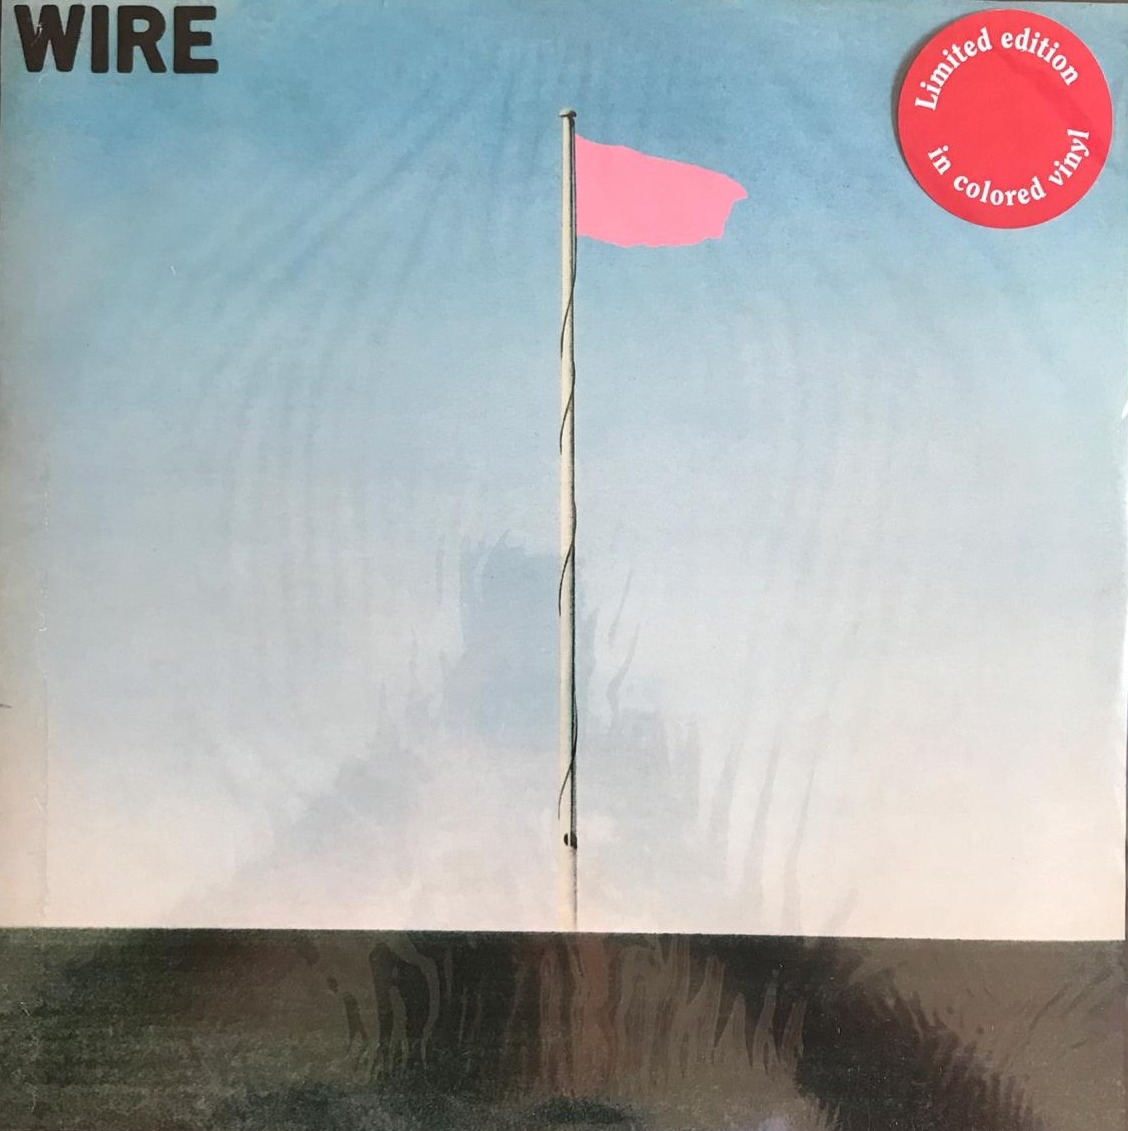 DISCO DE VINIL NOVO - WIRE - PING FLAG LP COLORIDO